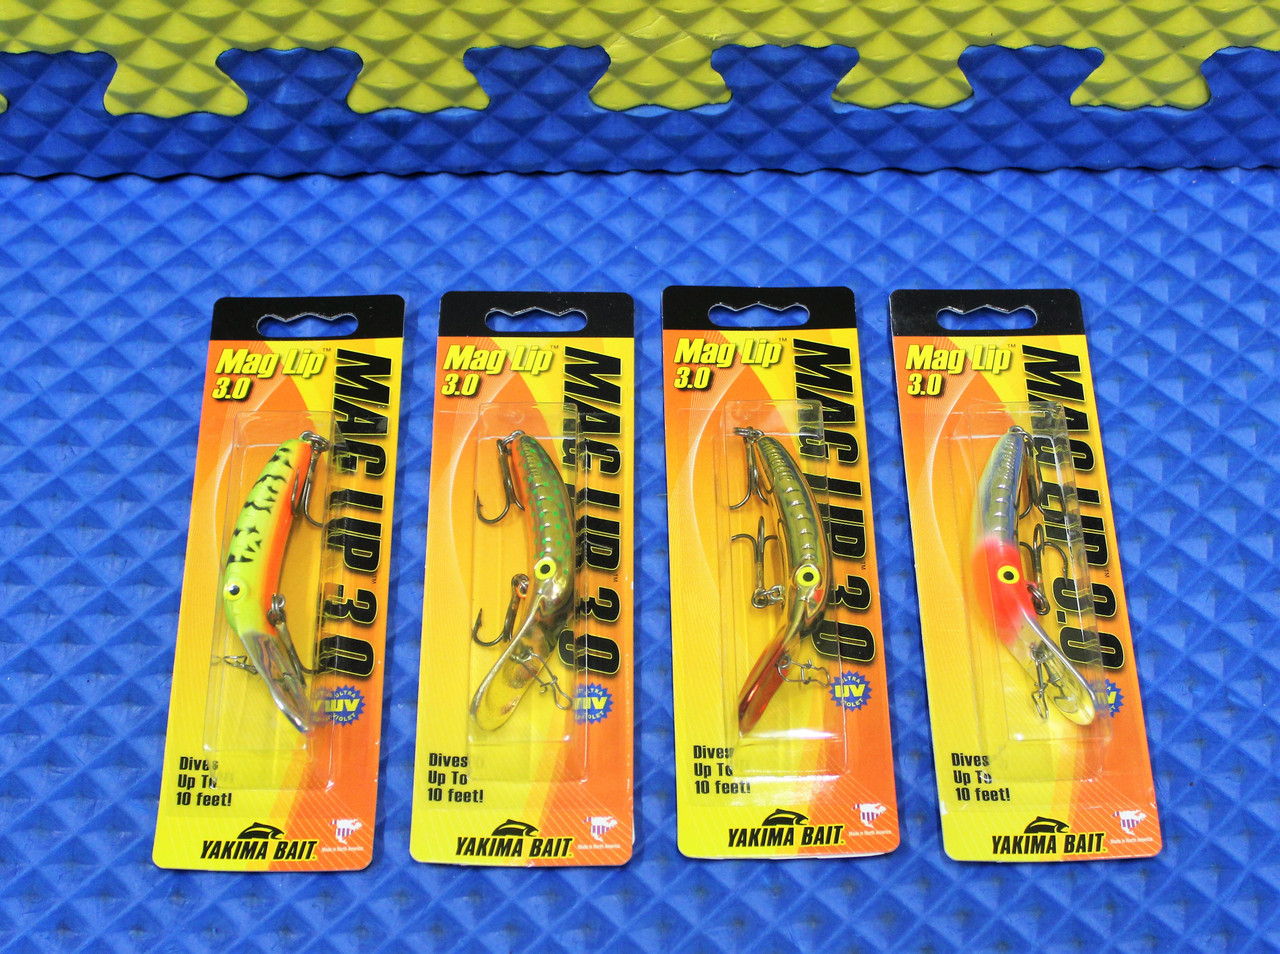 Yakima Bait Mag Lip 3.0 Dives Up To 10' CHOOSE YOUR COLOR!